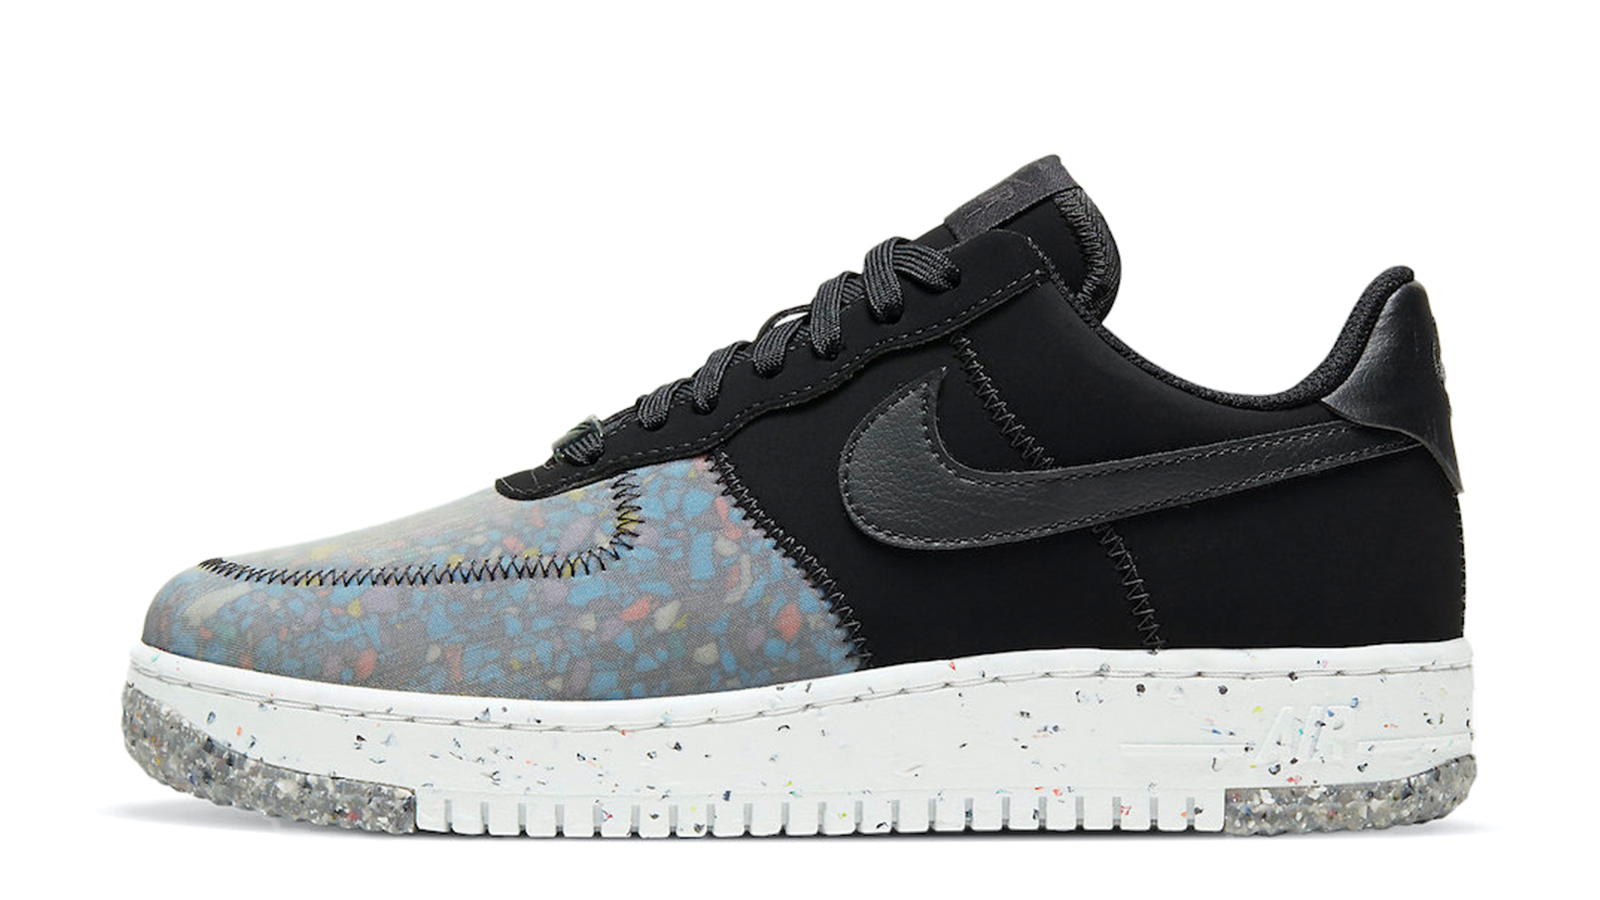 Nike Air Force 1 'Crater Foam Black Photon Dust CT1986-002